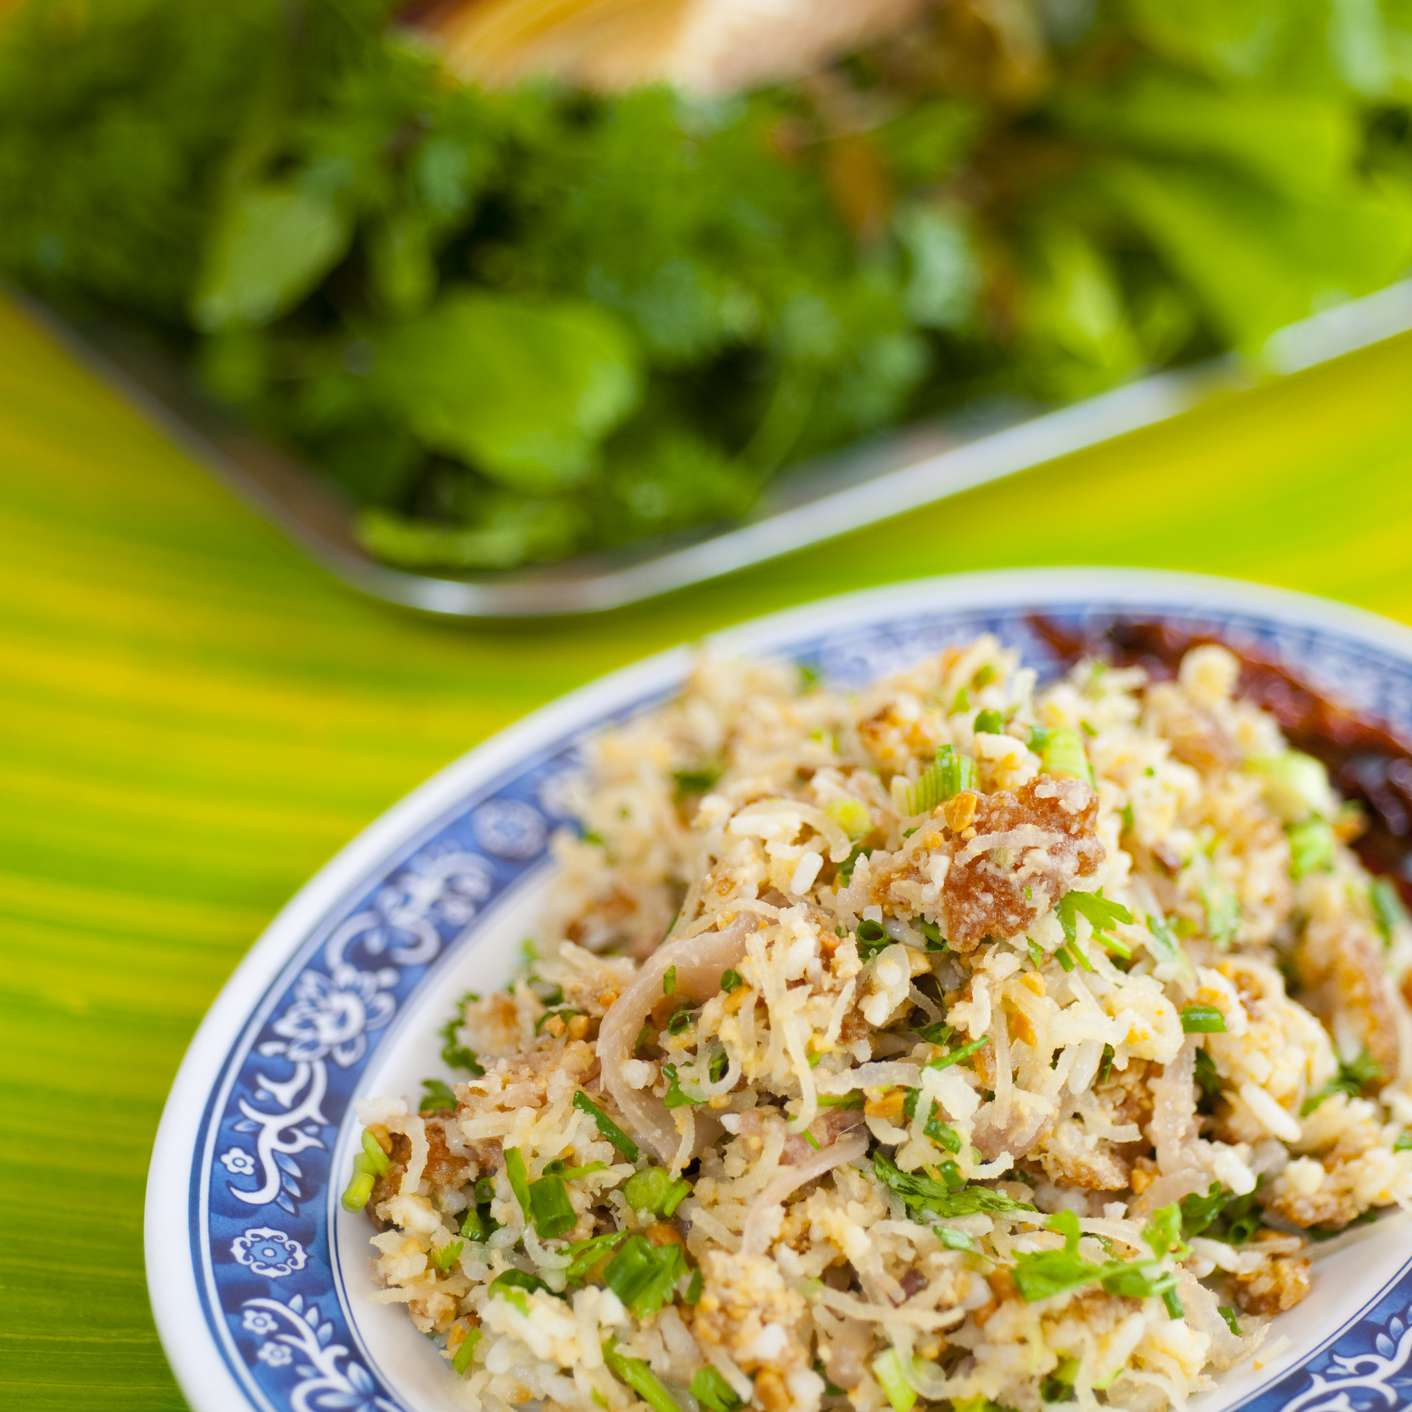 Dish of naem khao, salad of rice and fermented pork, at restaurant.